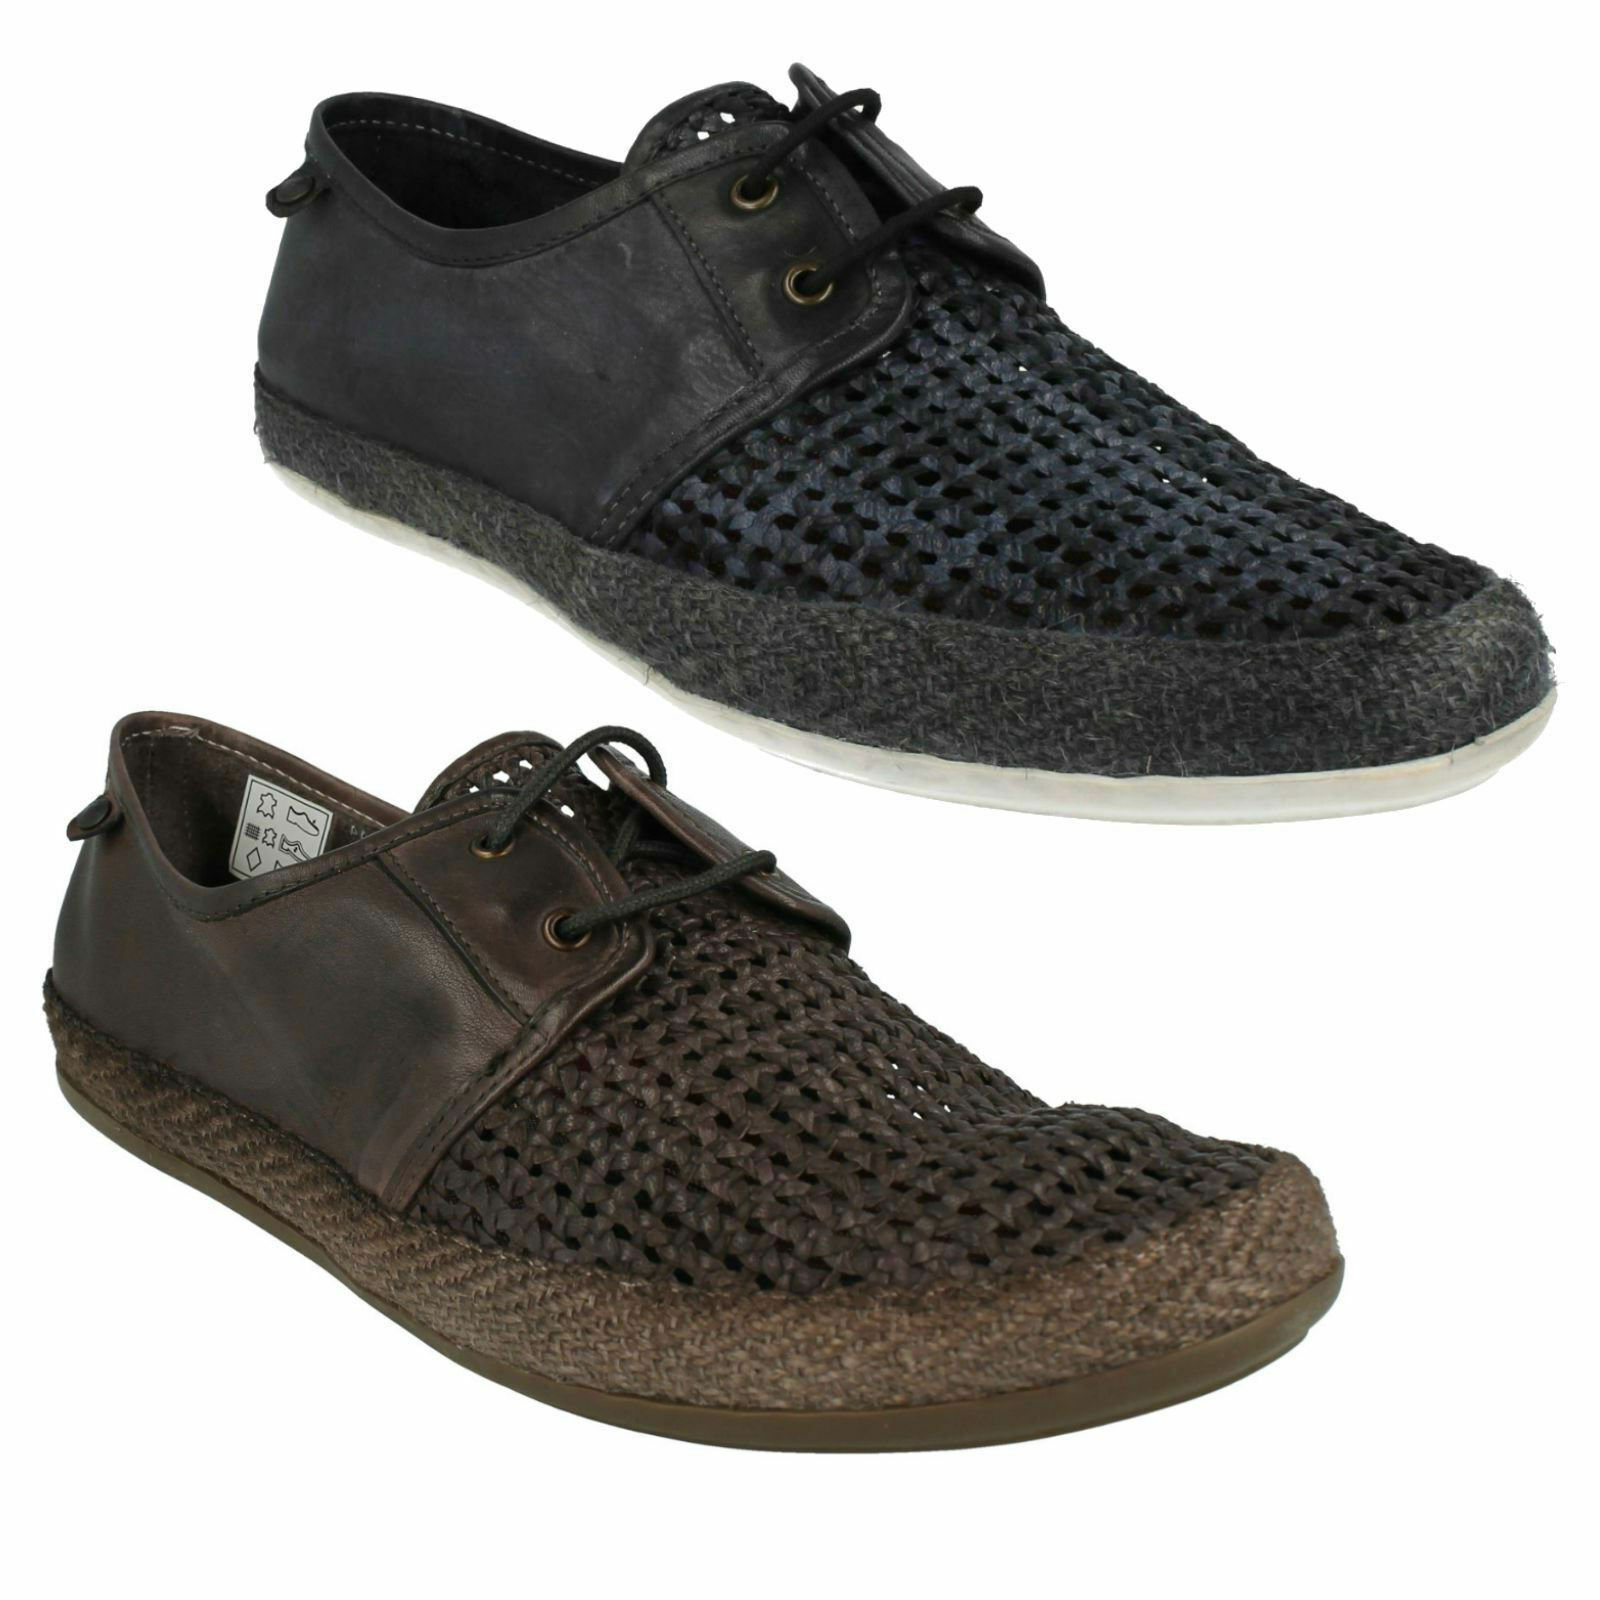 BASE LONDON TENT WEAVE MENS LACE UP CASUAL EVERYDAY SUMMER SMART FLAT SHOES